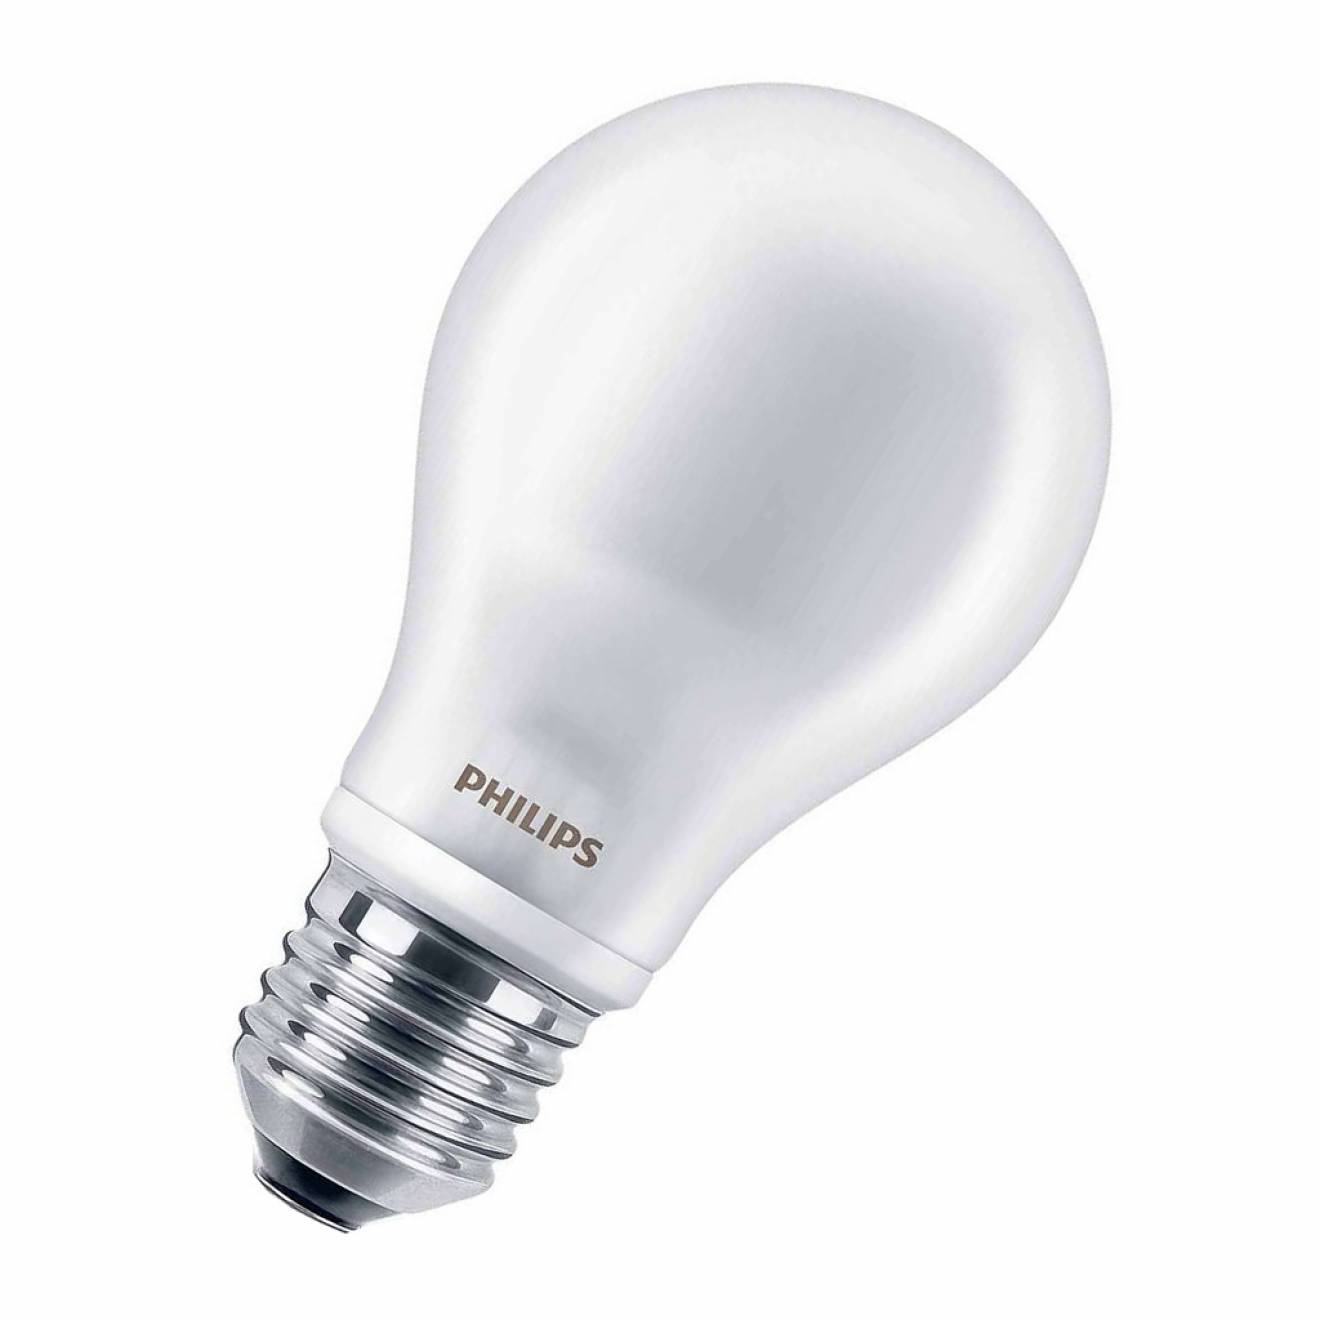 Philips Classic Led Philips Classic Led Lampe E27 5w Warmweiß Nicht Dimmbar